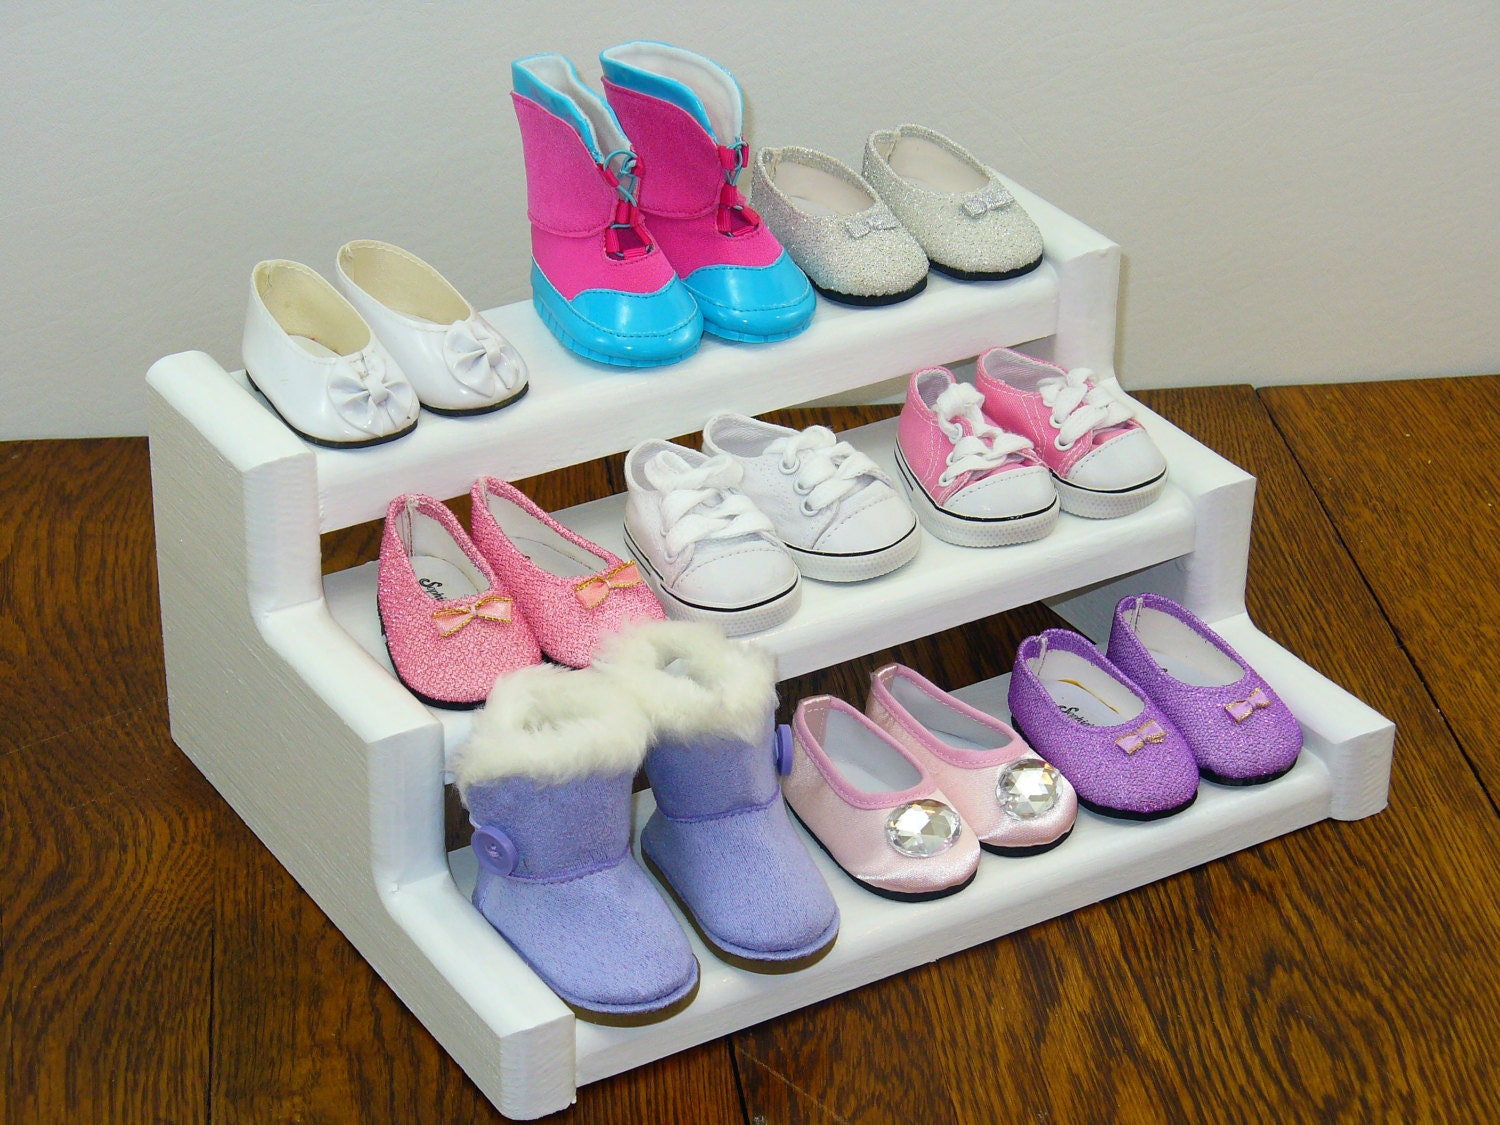 18 Inch Doll Furniture Shoe Rack Display Stand Display